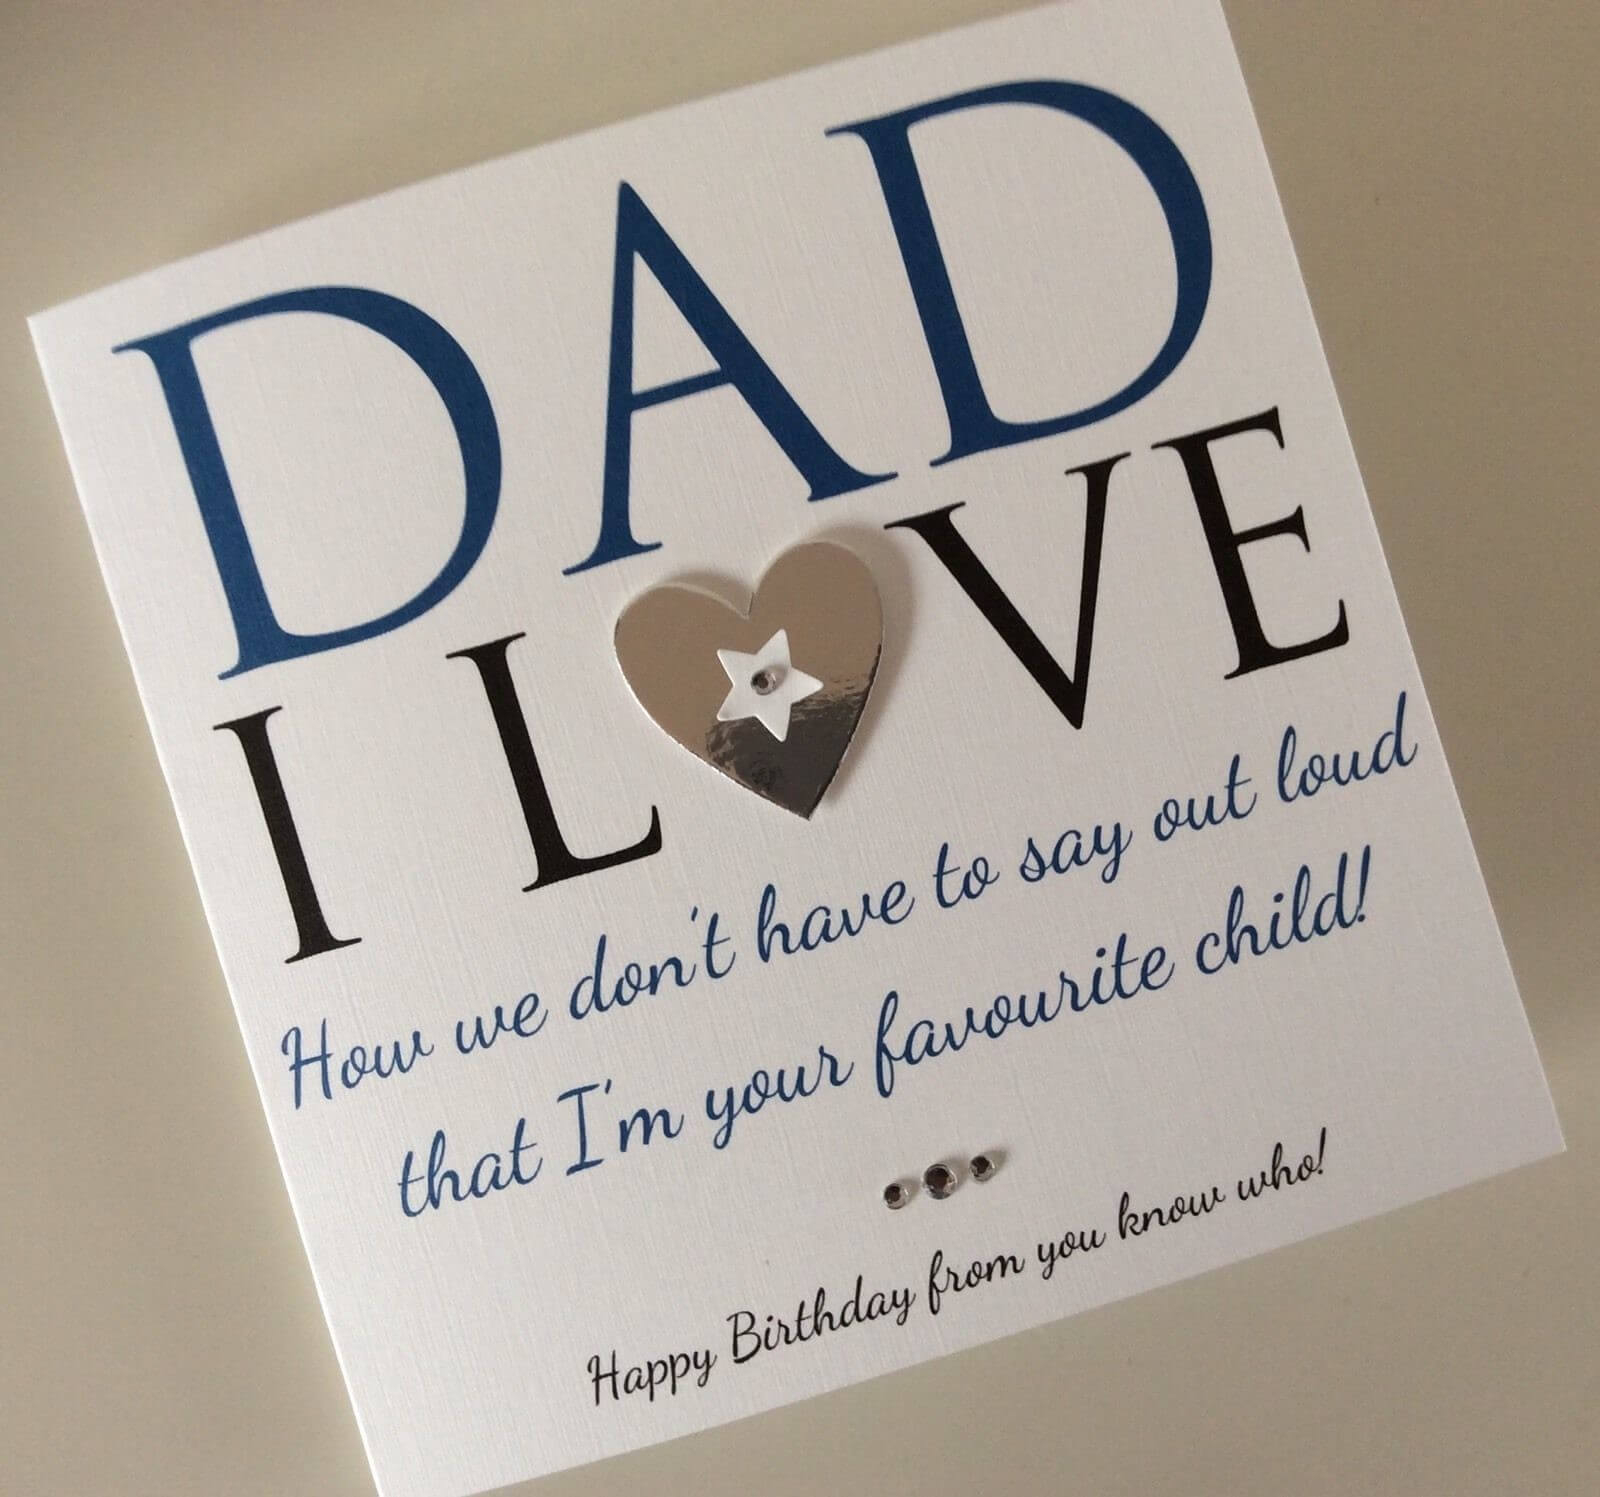 Father Birthday Card Ideas 98 Birthday Greetings Cards For Dad Dad Birthday Card From Kids